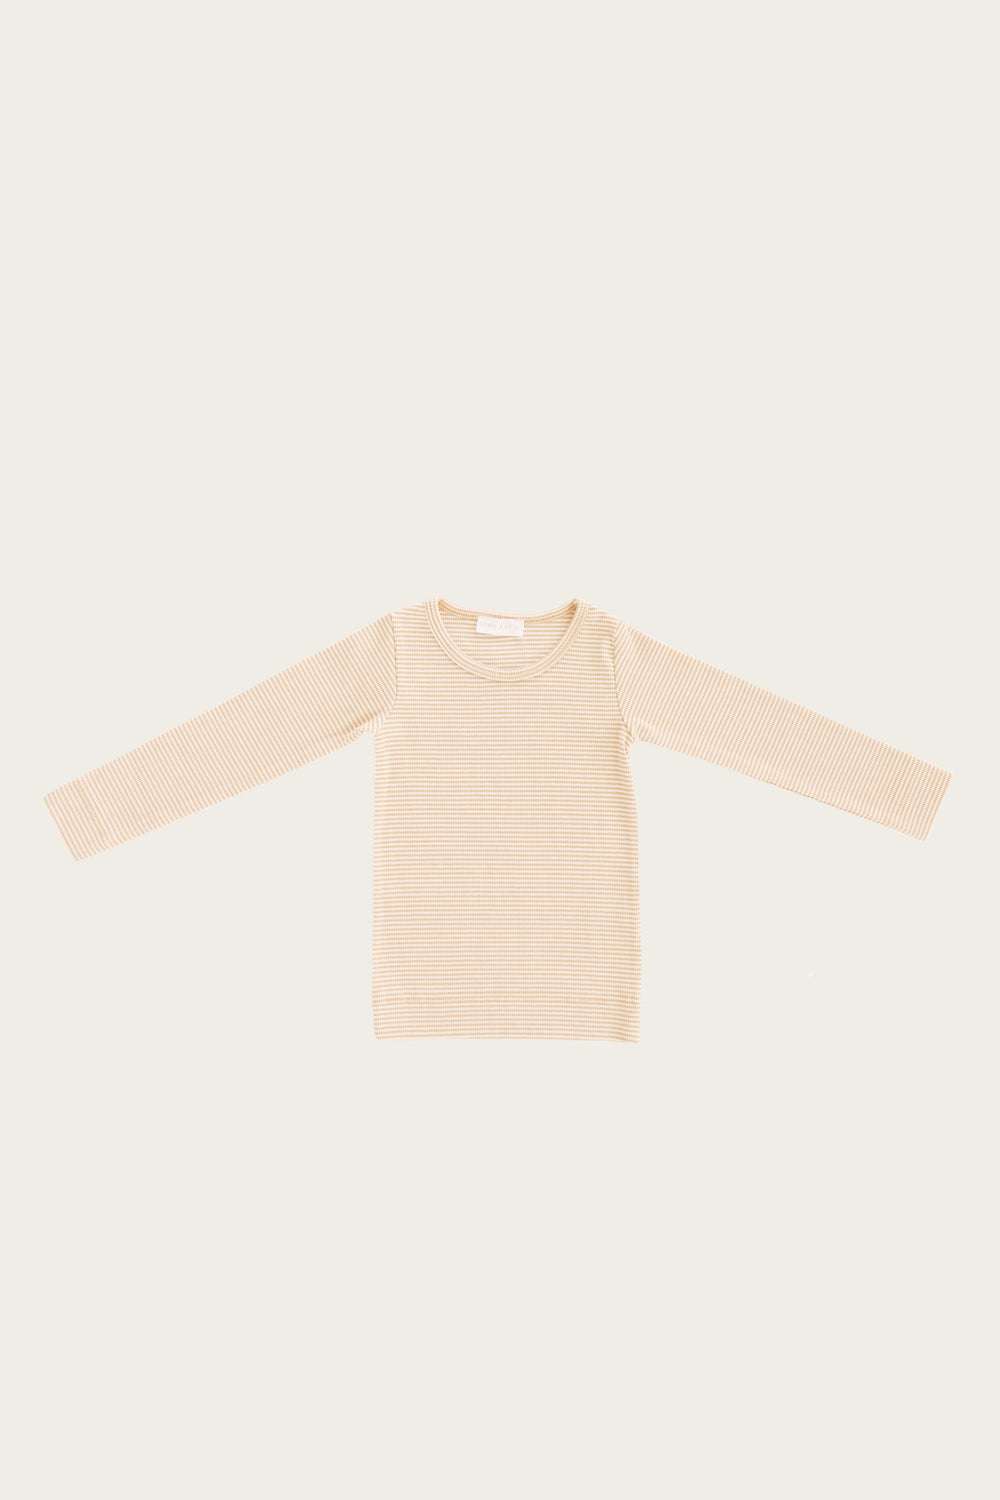 Charlie Top - Honey Peach Stripe